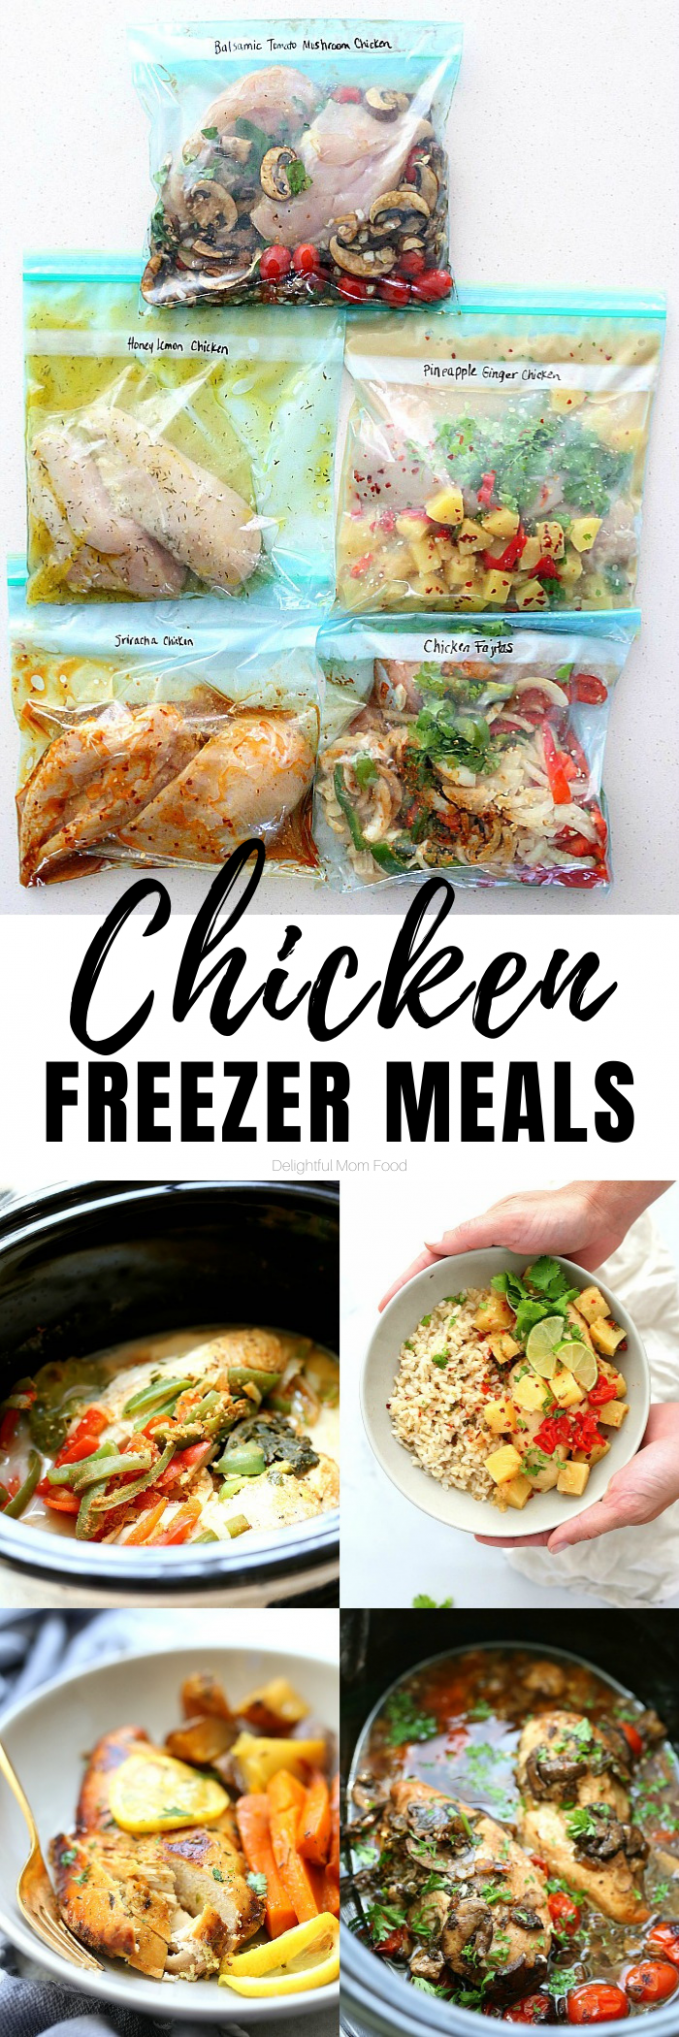 13 Chicken Freezer Meals: Easy Meal Prep | Delightful Mom Food - chicken recipes you can freeze